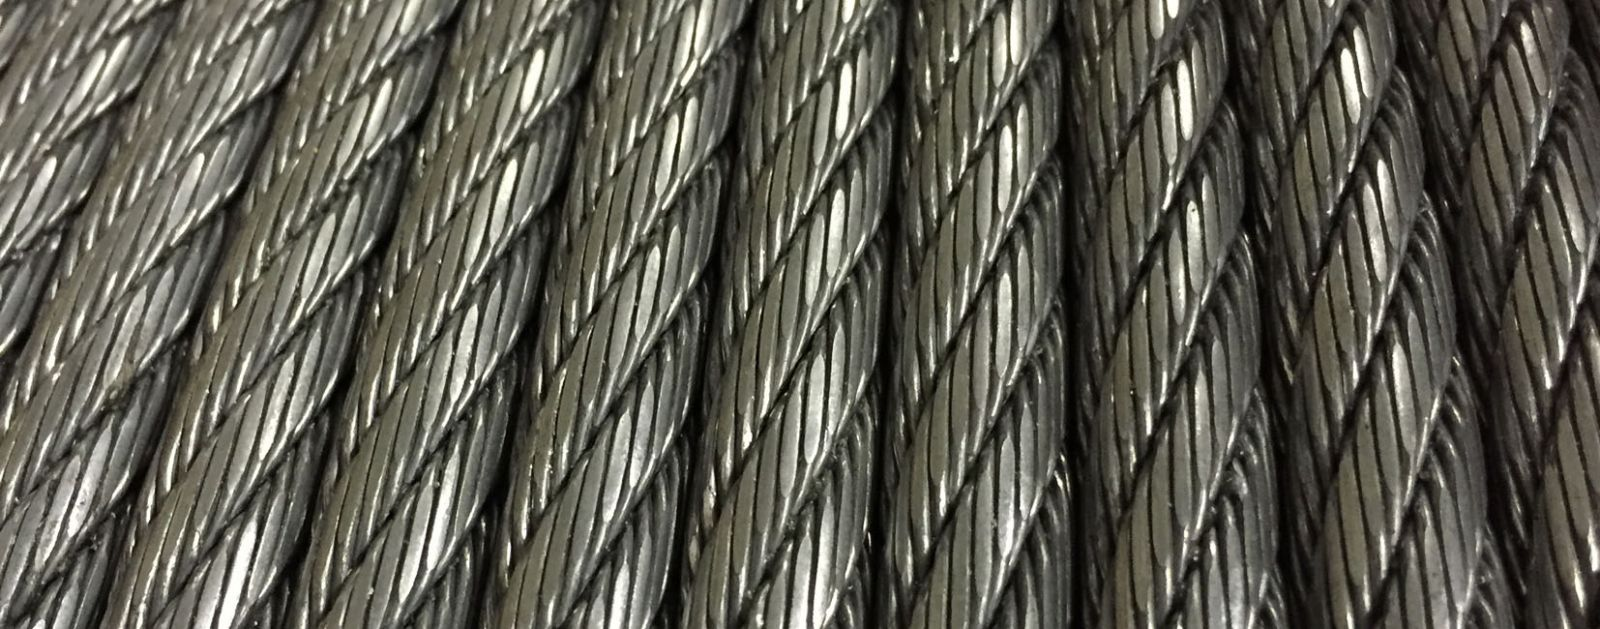 5/8 Inch 6x26 Swaged Wire Rope | Bluejay Industrial Inc. - Hayden, ID